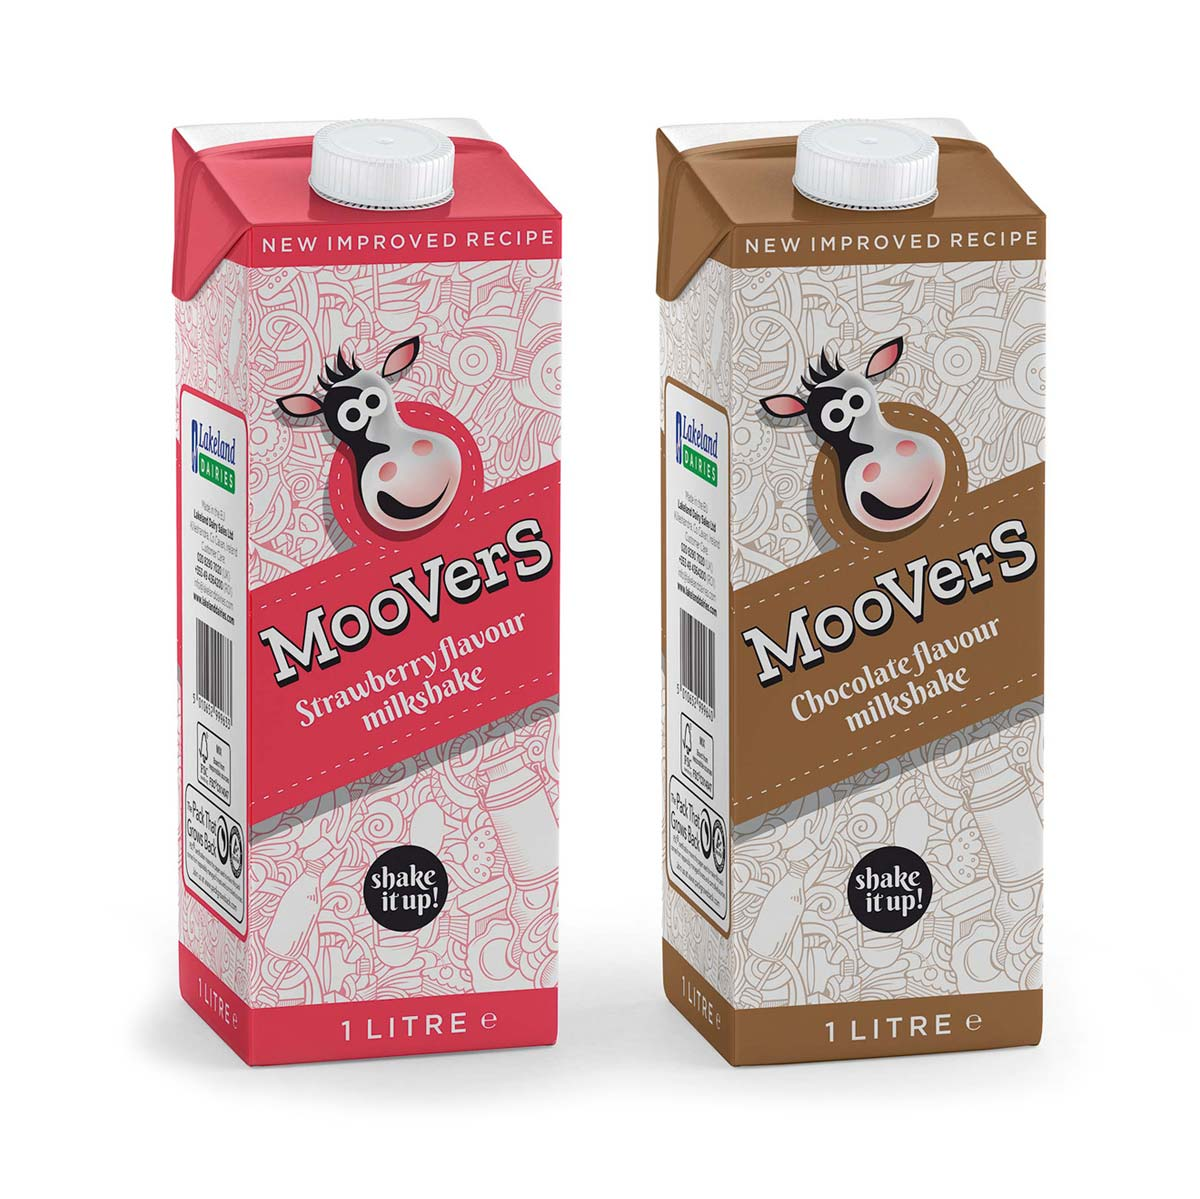 Moovers flavoured milk character and pack design